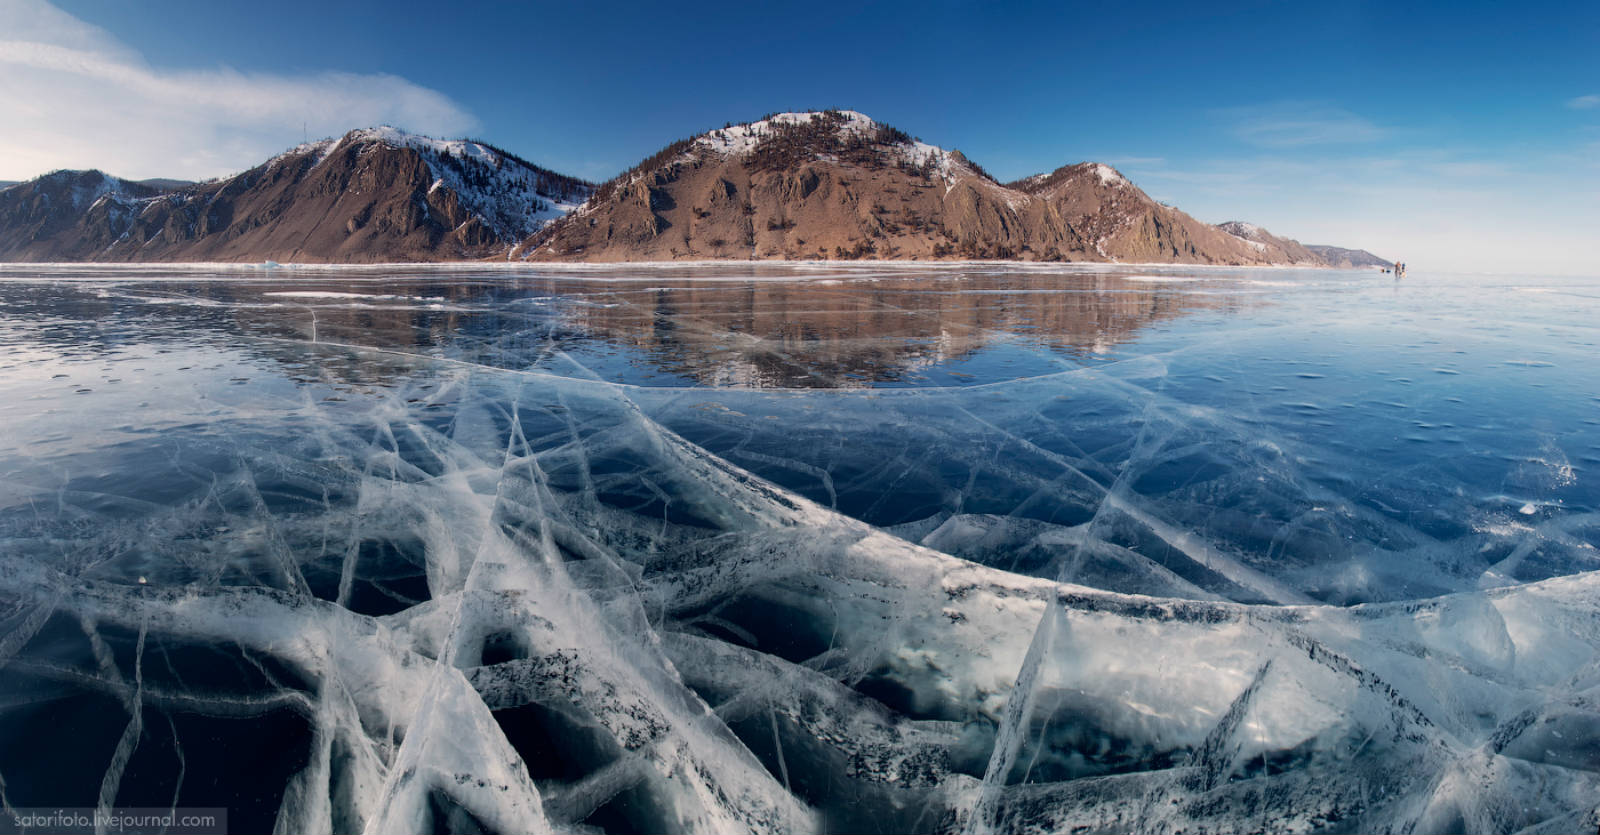 Lake Baikal - Frozen North